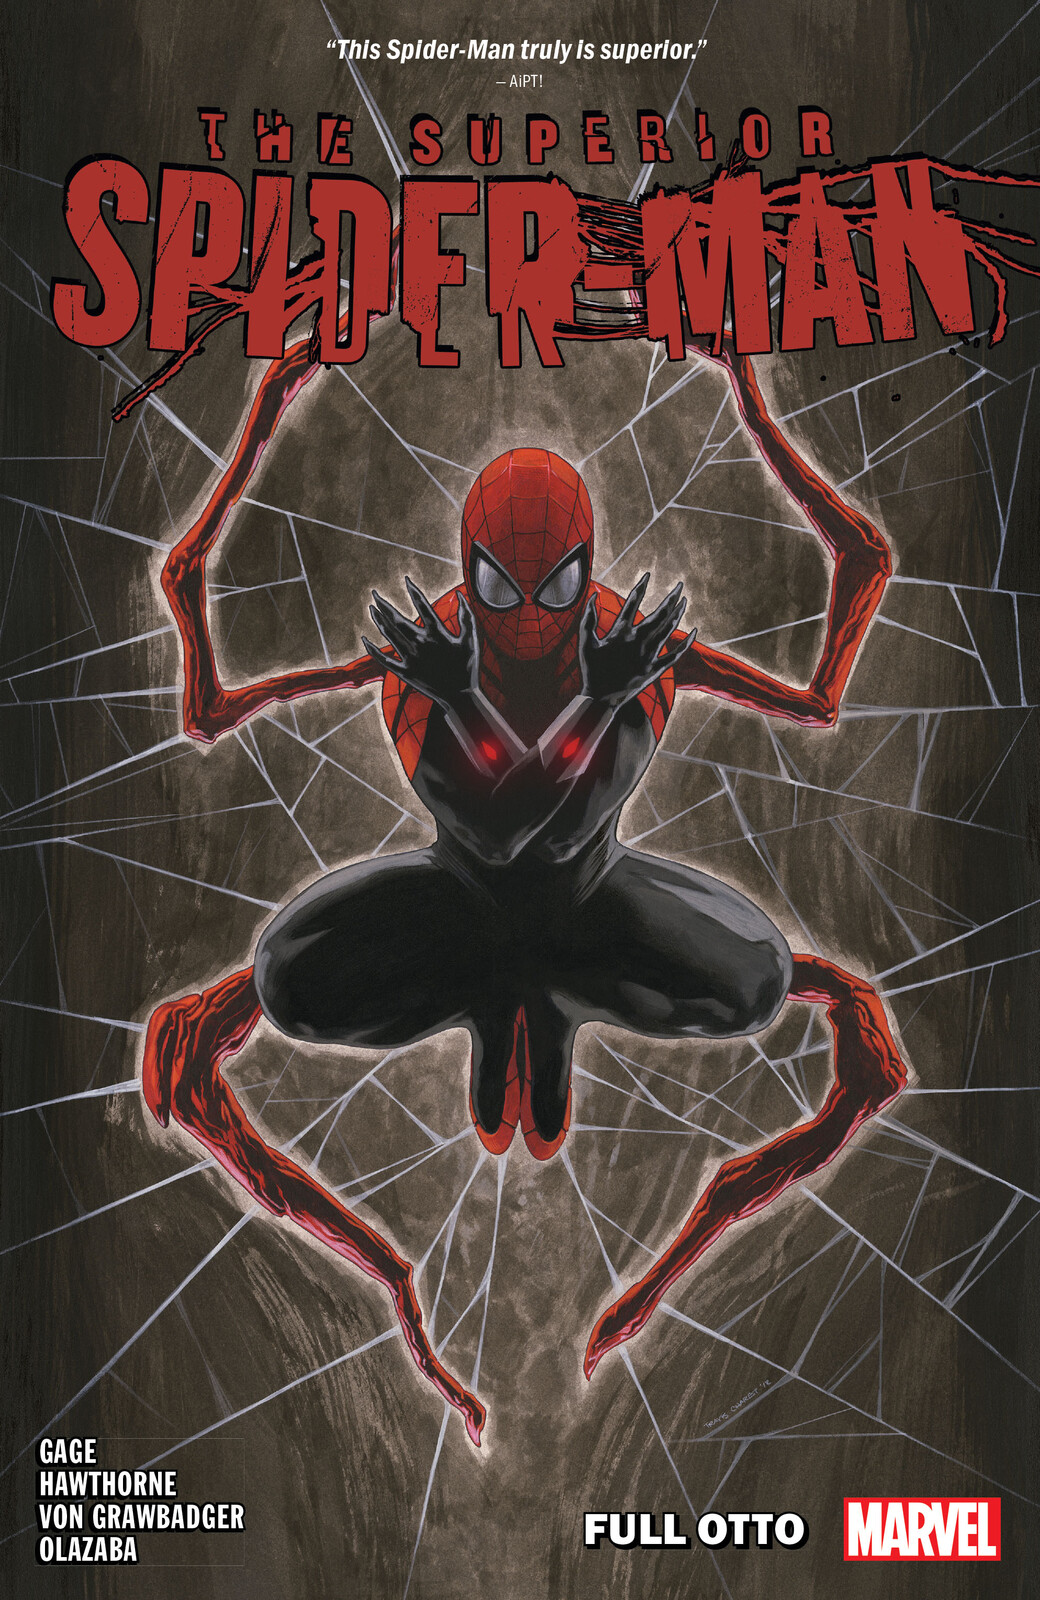 Design and Layout for Marvel's Superior Spider-Man Vol. 1: Full Otto